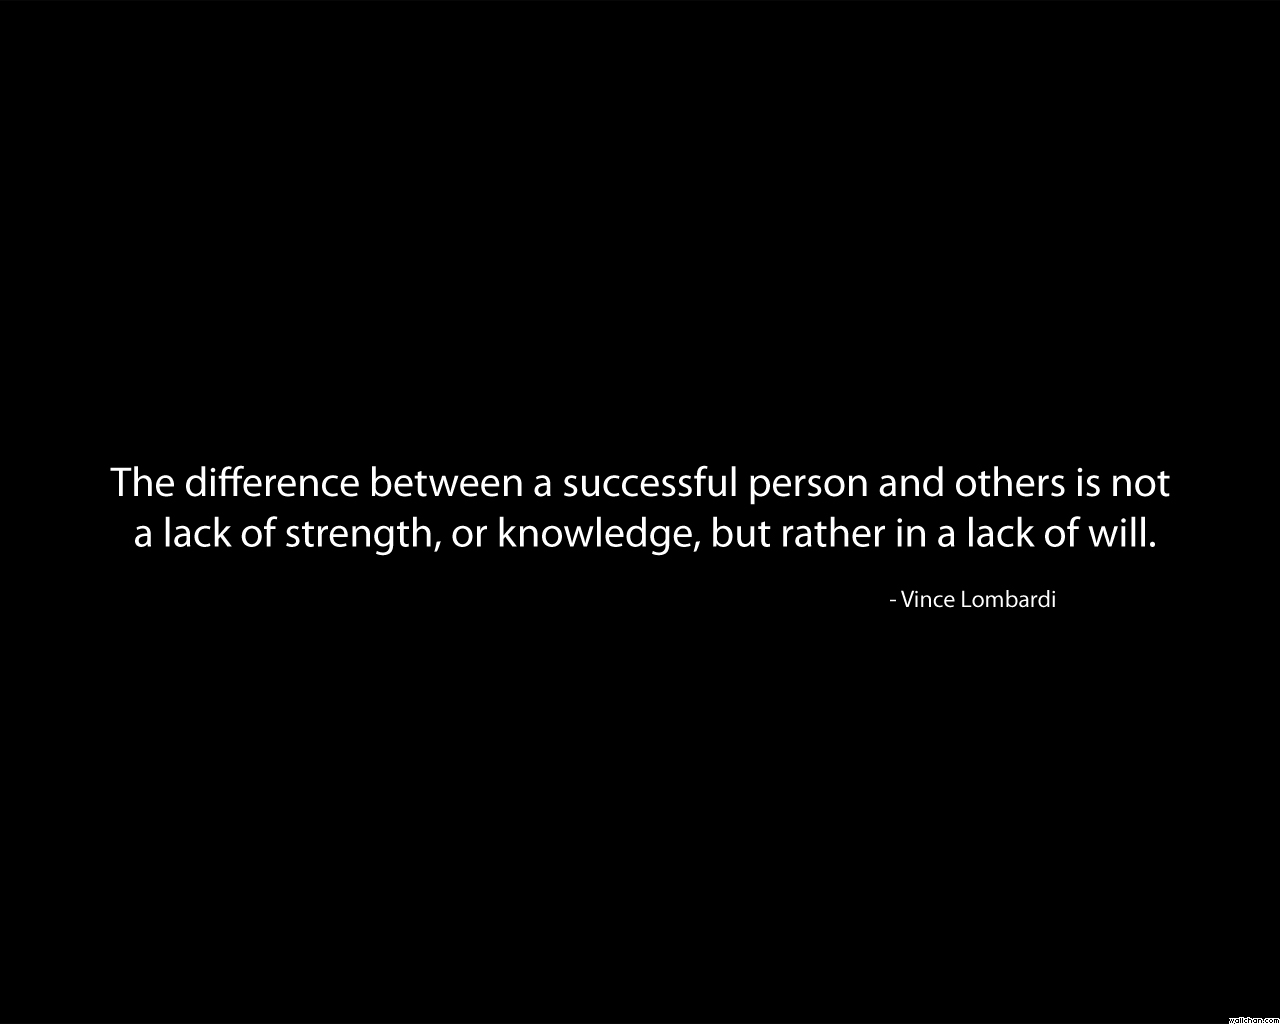 Vince Lombardi's quote #5